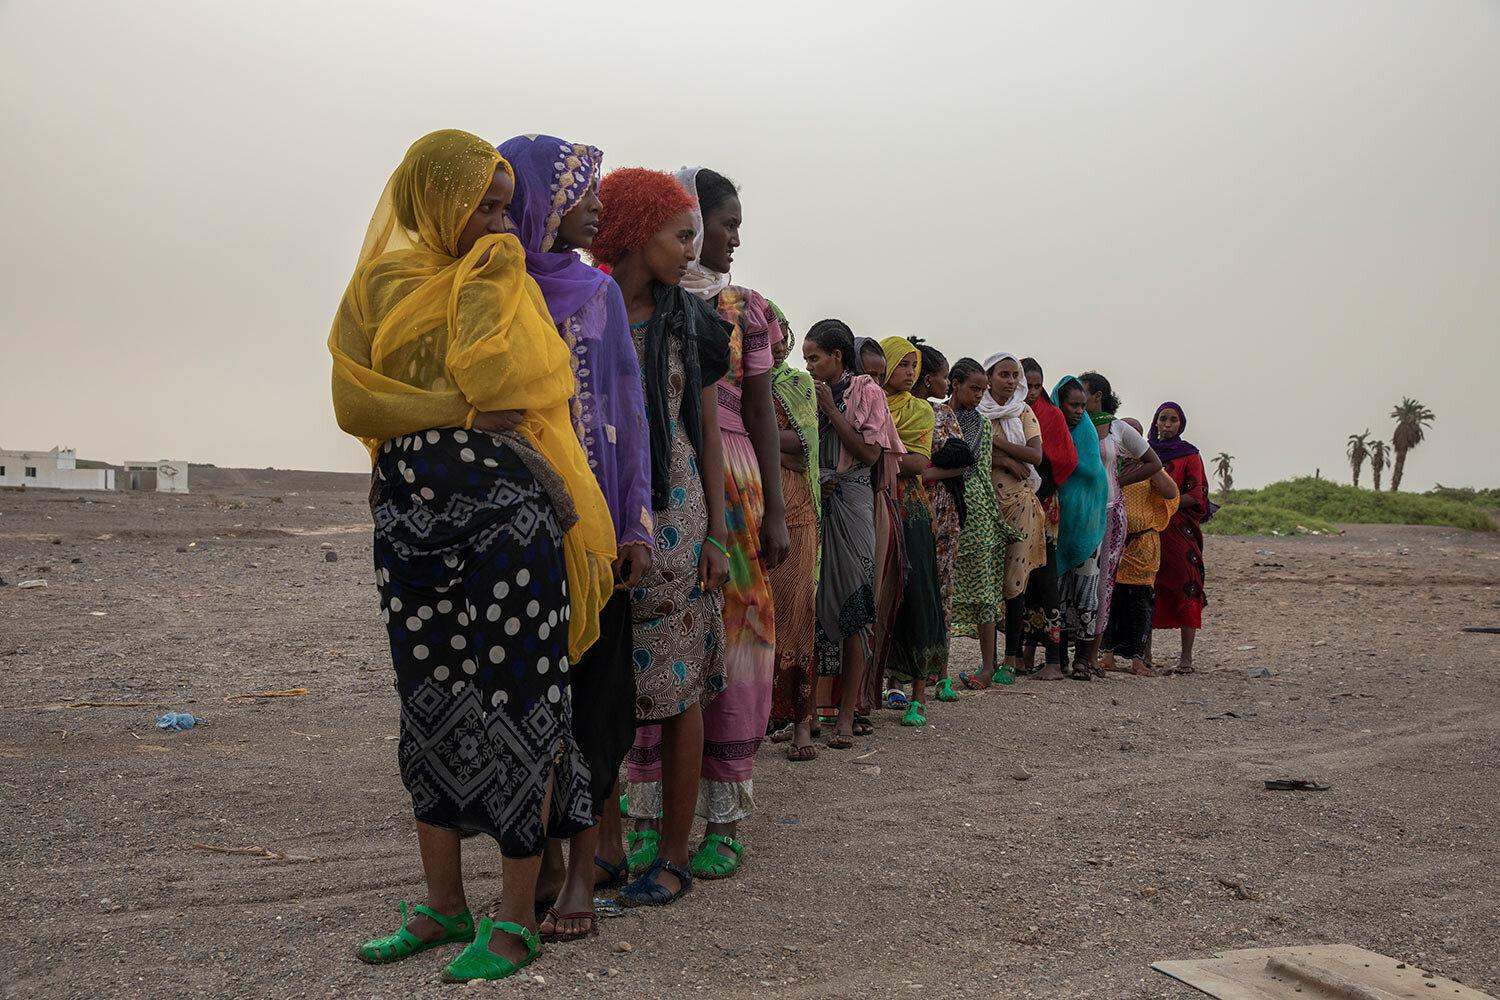 Ethiopian Tigray migrants stand in line to be counted by smugglers in Lahj, Yemen after arriving to the coastal village of Ras al-Ara from Djibouti. (AP Photo/Nariman El-Mofty)